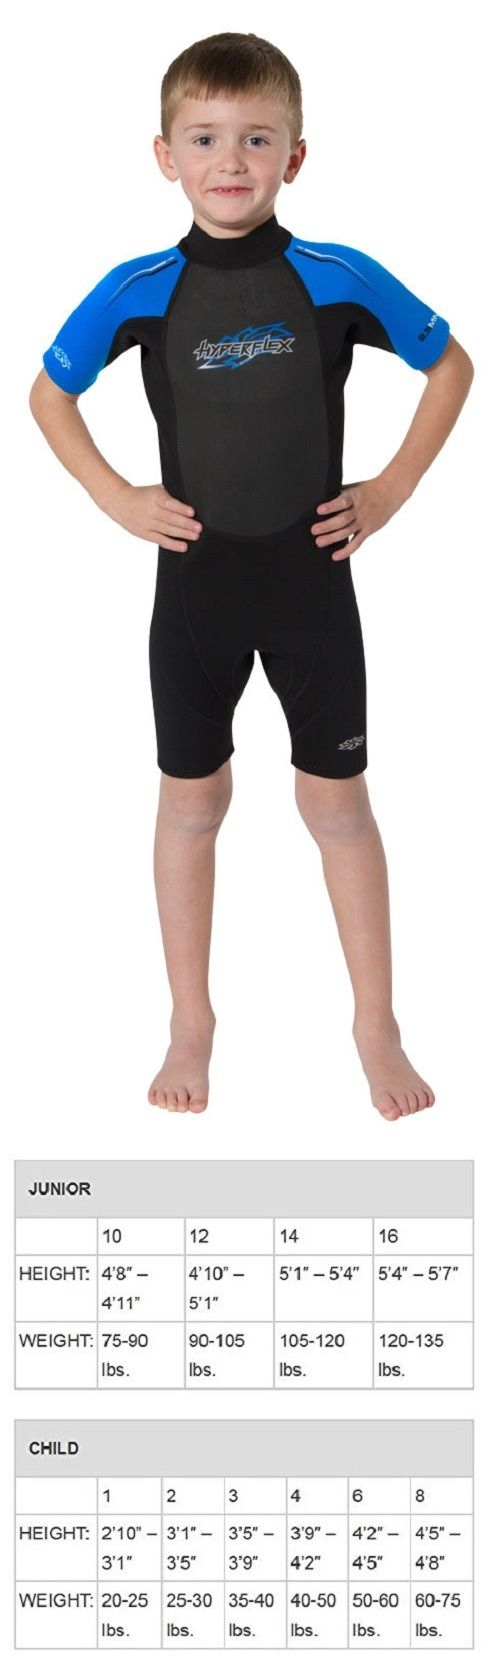 Youth 47355: Hyperflex Children S Access Shorty Spring Suit Wetsuit 2.5Mm Size 2-8 Black Blue -> BUY IT NOW ONLY: $34.99 on eBay!